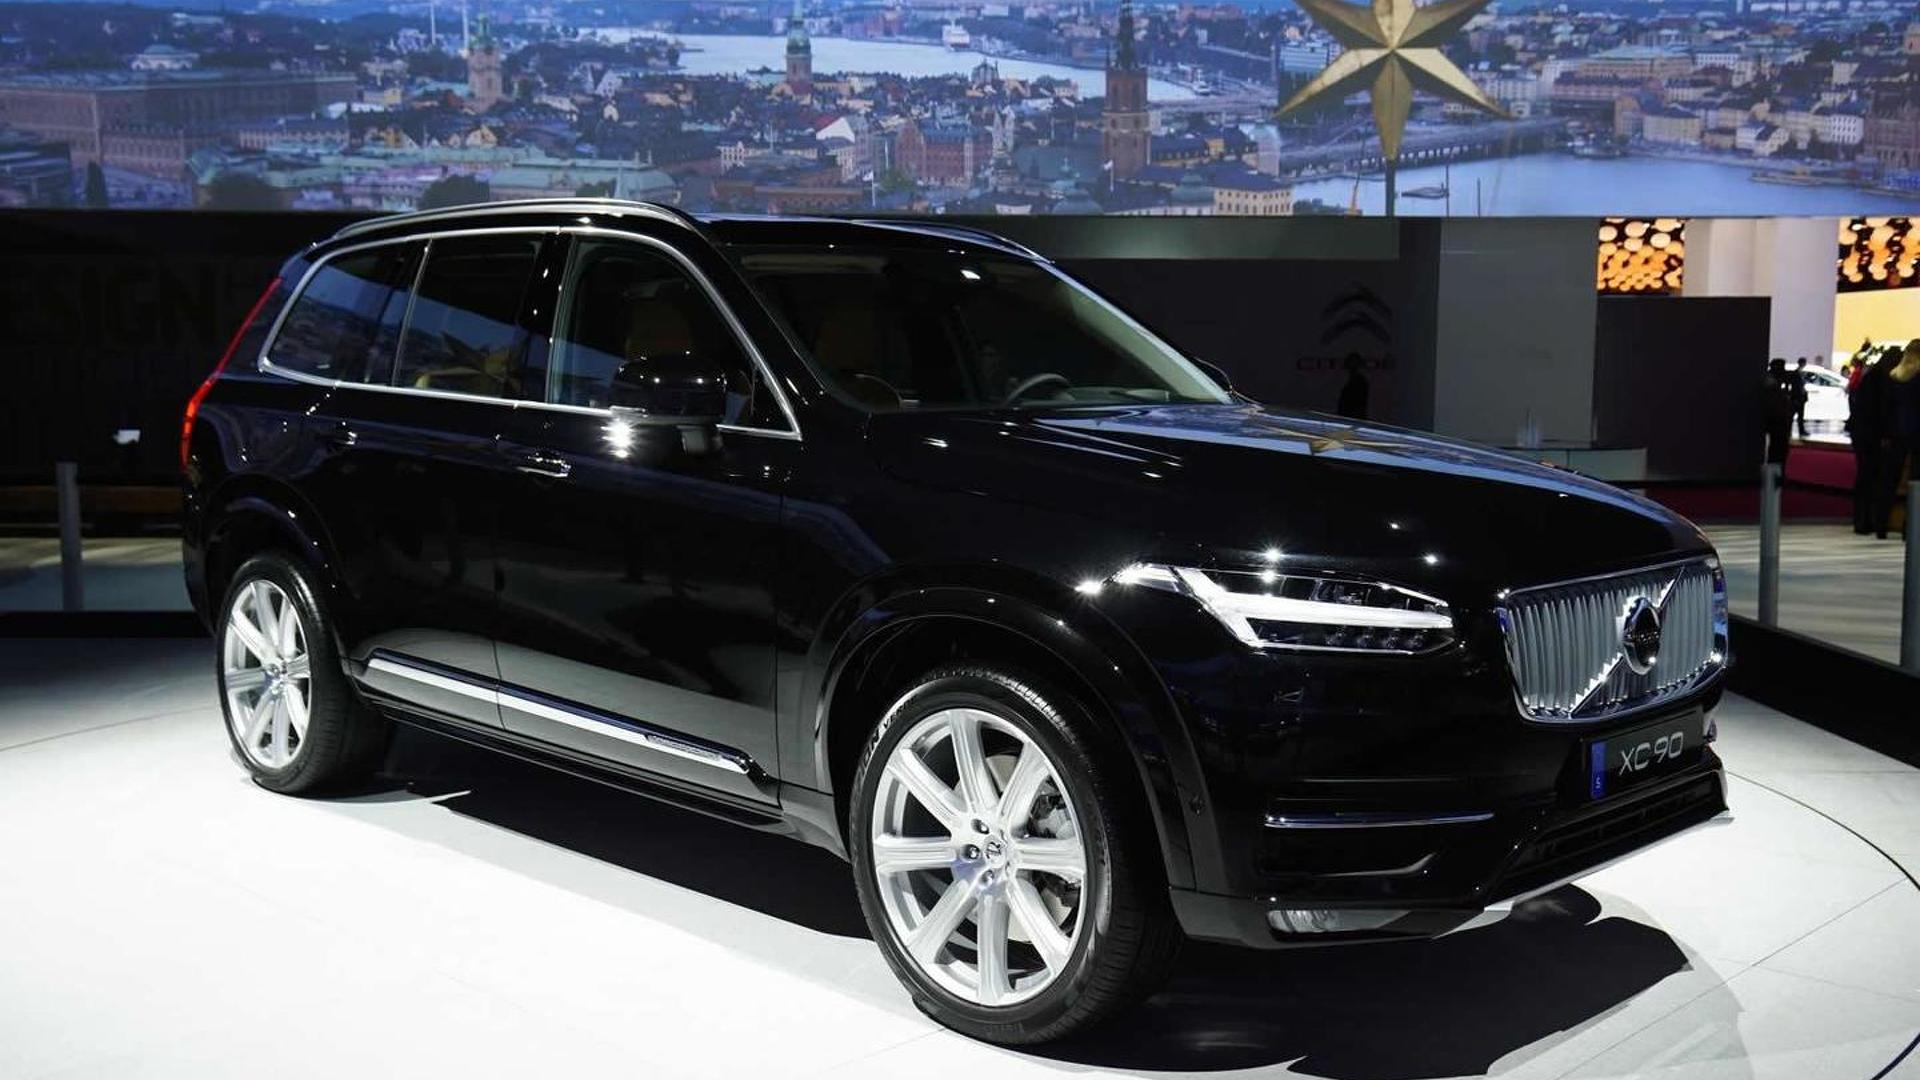 Volvo XC Shows Its Stylish Silhouette In Paris - The car pro show price